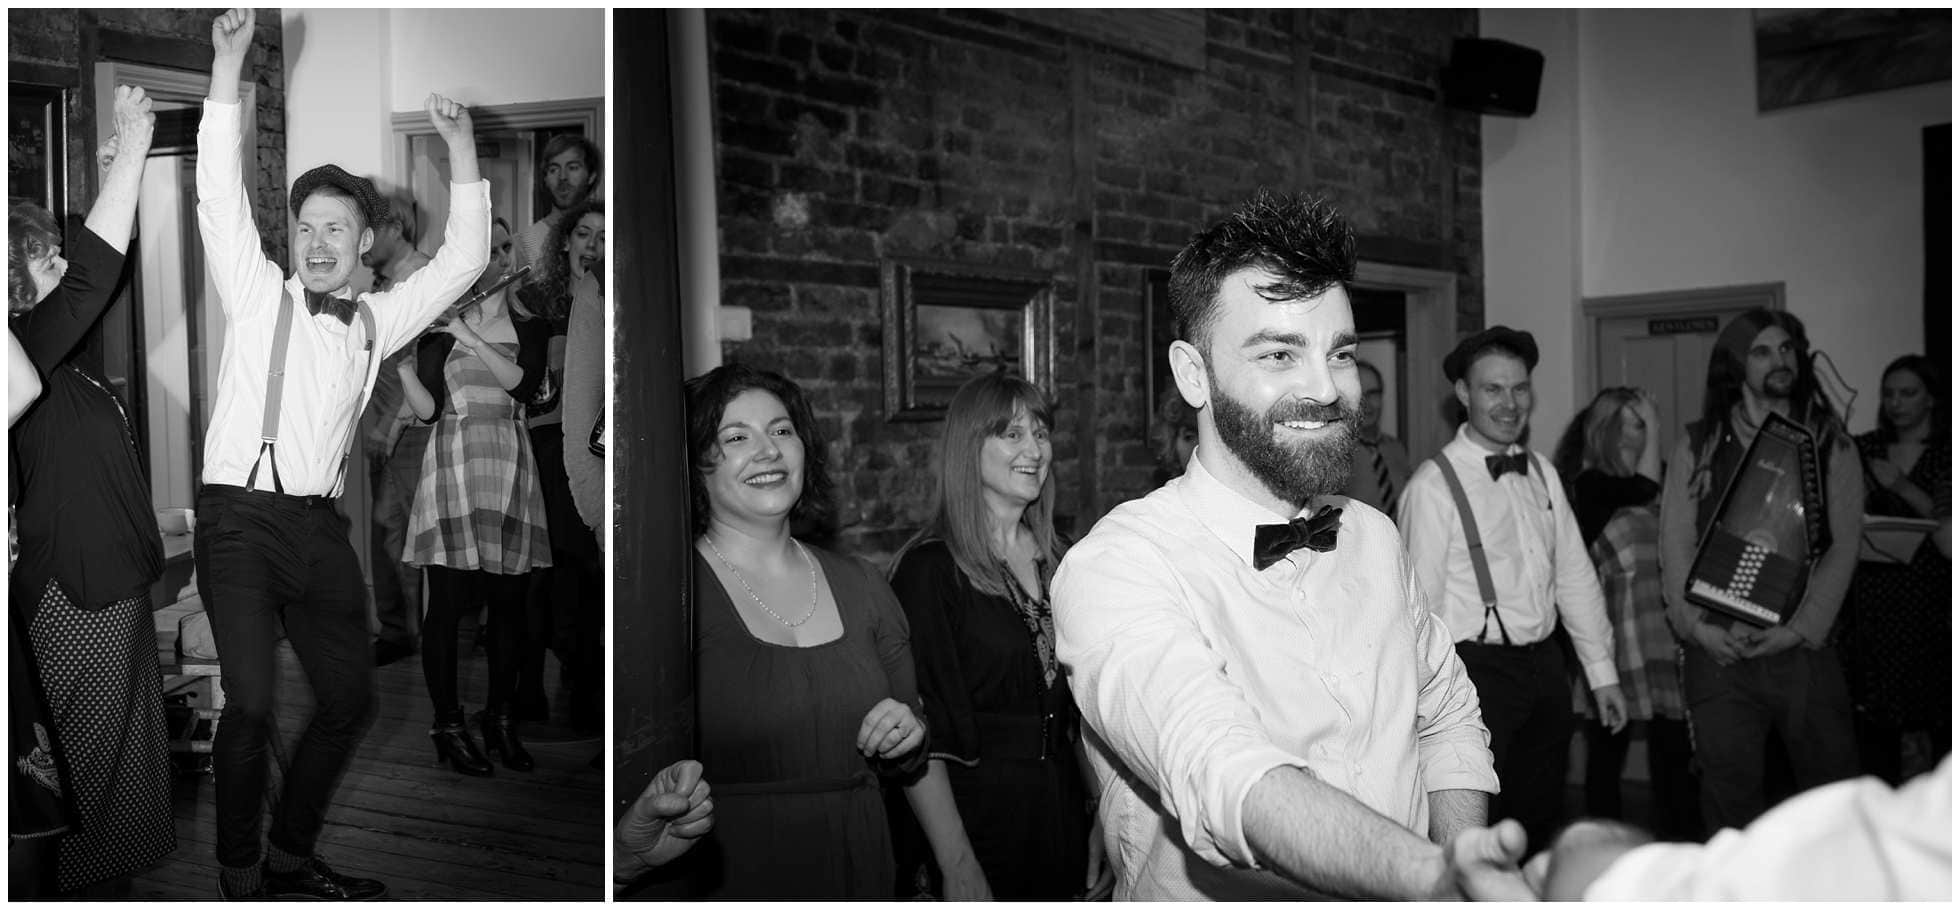 A joyous groom at a ceilidh